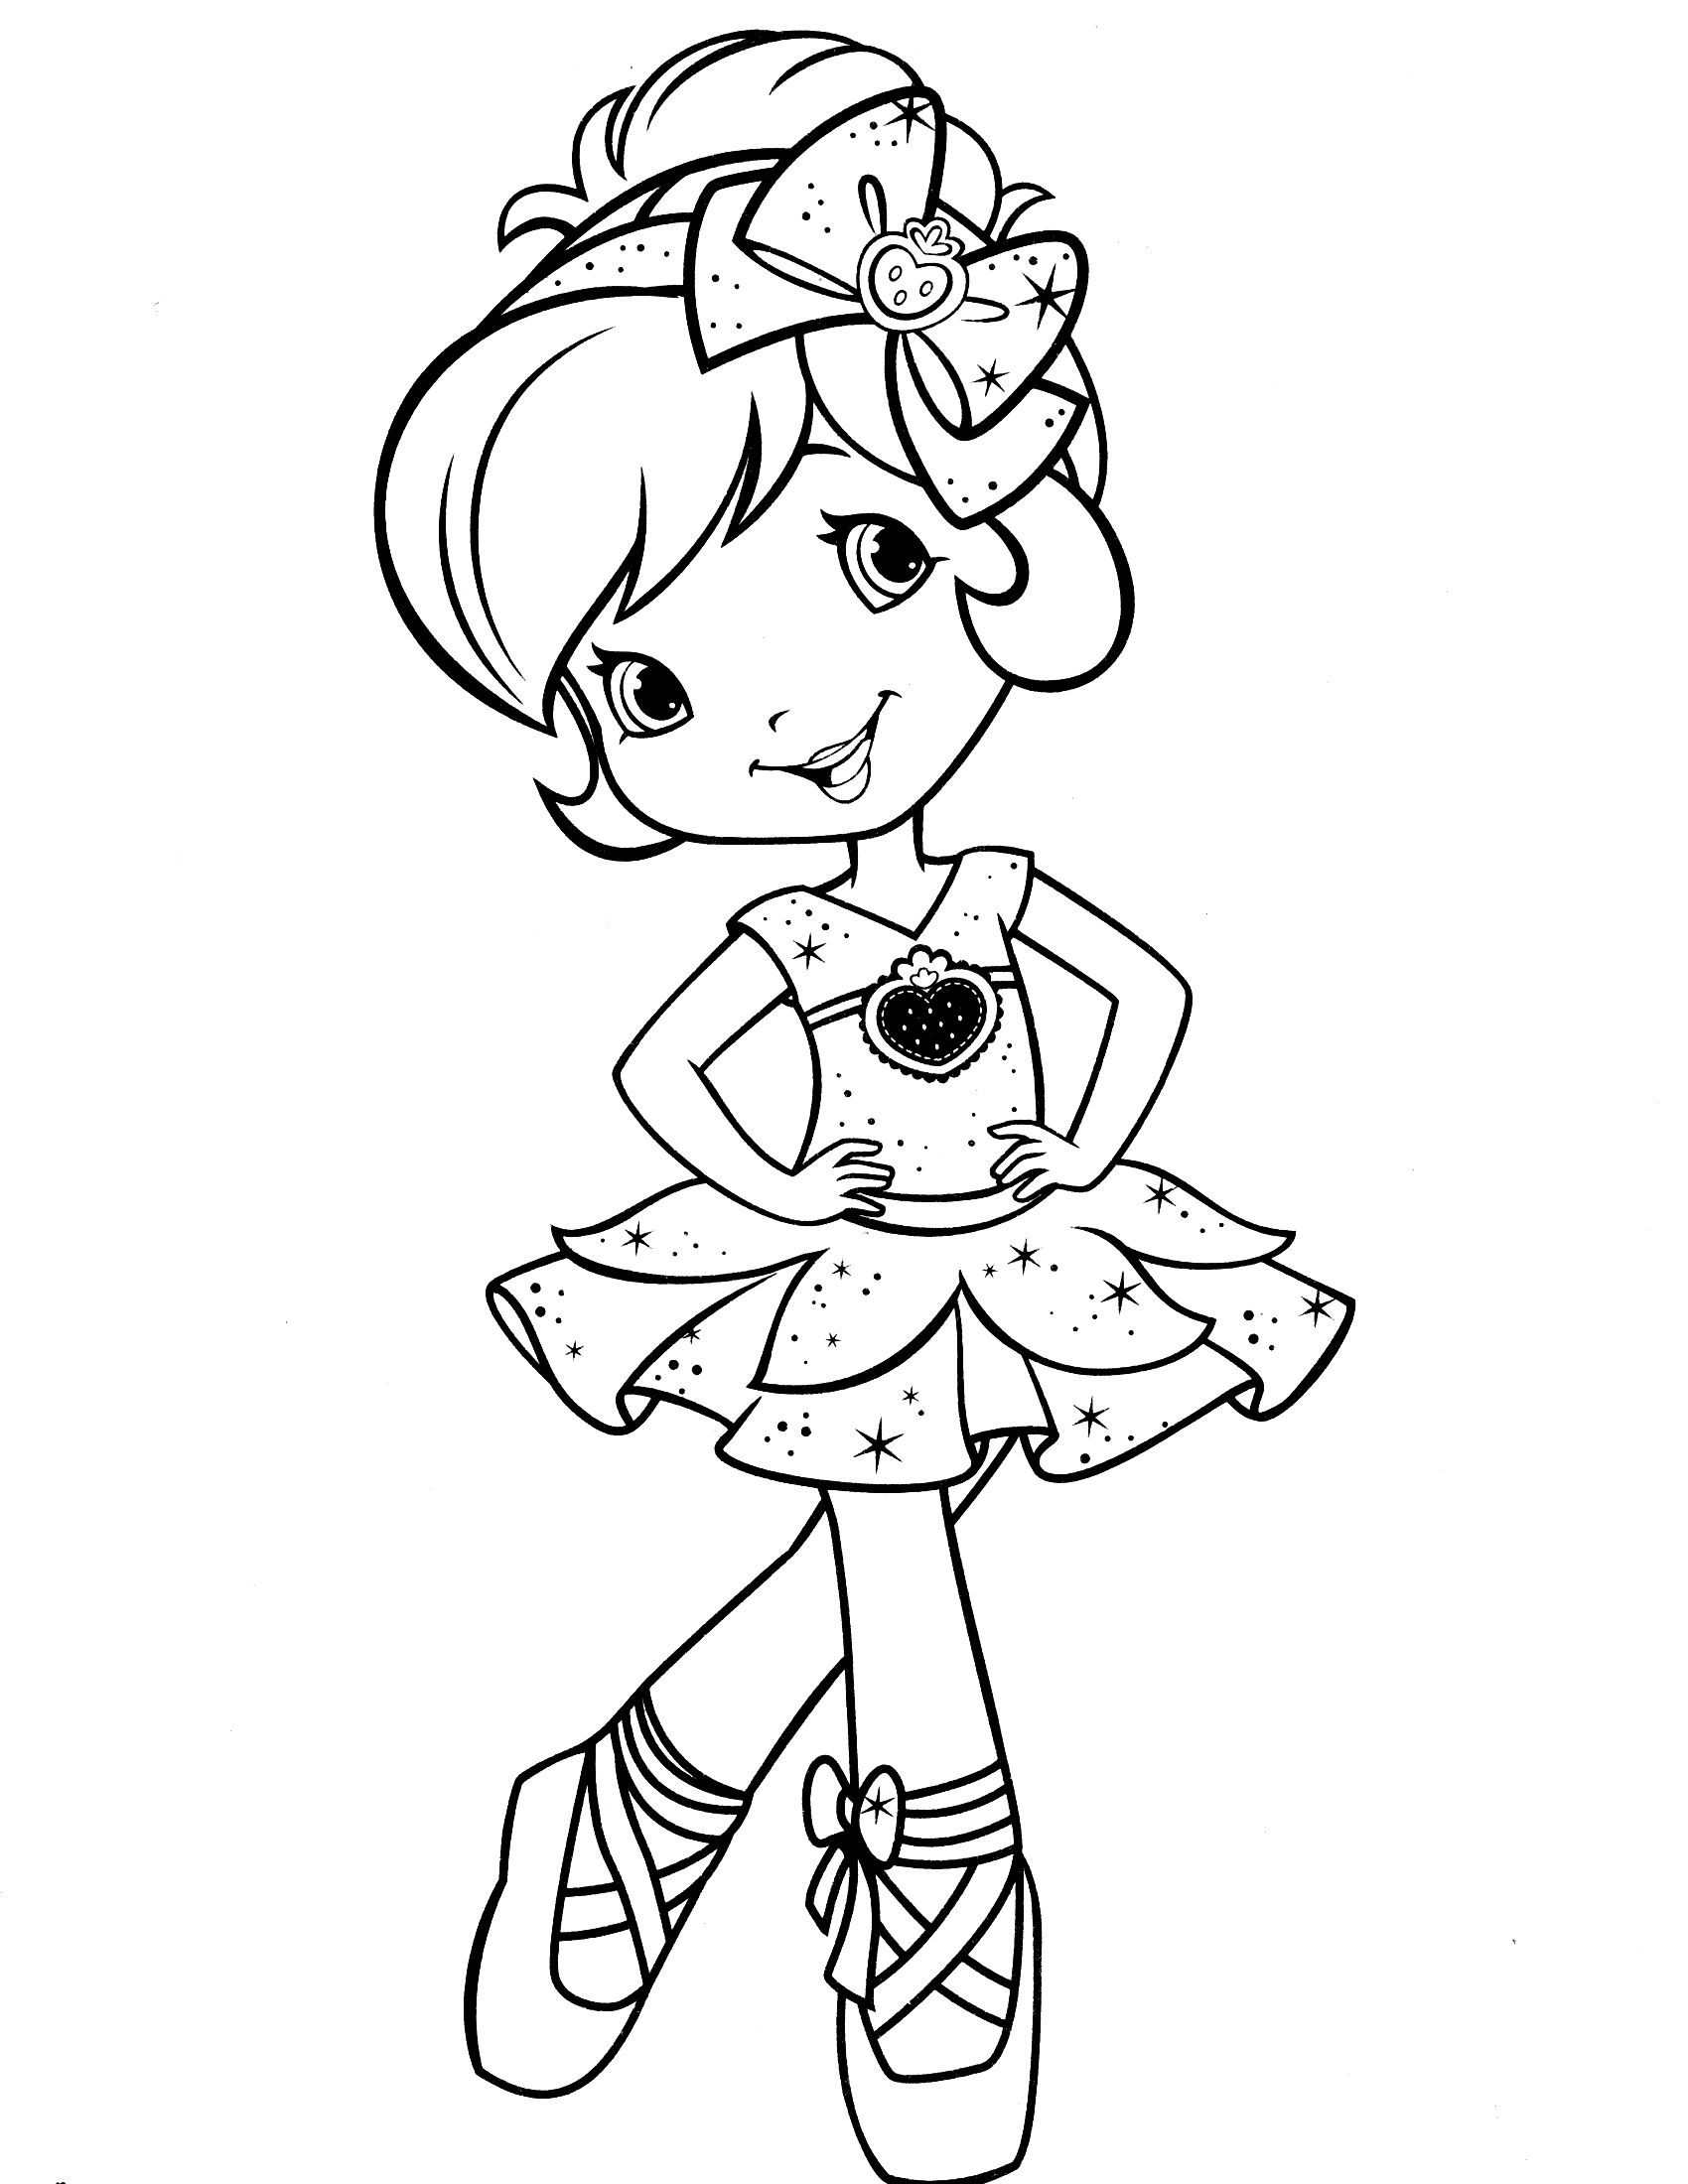 strawberry shortcake coloring page | MOLDES... COPIAS! | Pinterest ...